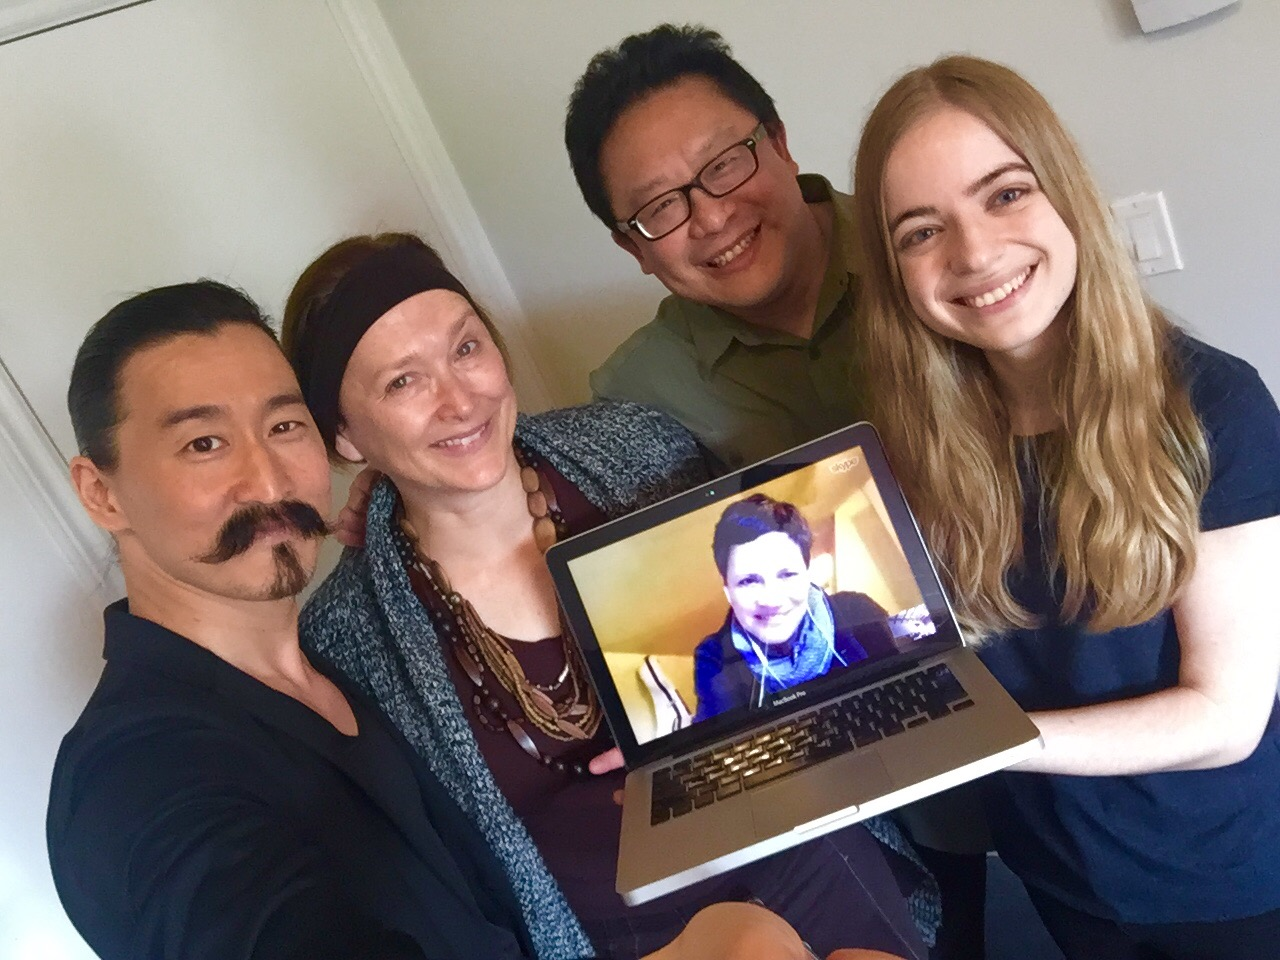 Tetsuro Shigematsu, Leanna Brodie, Jovanni Sy, Veronique West holding up computer with Kendra Fanconi on screen